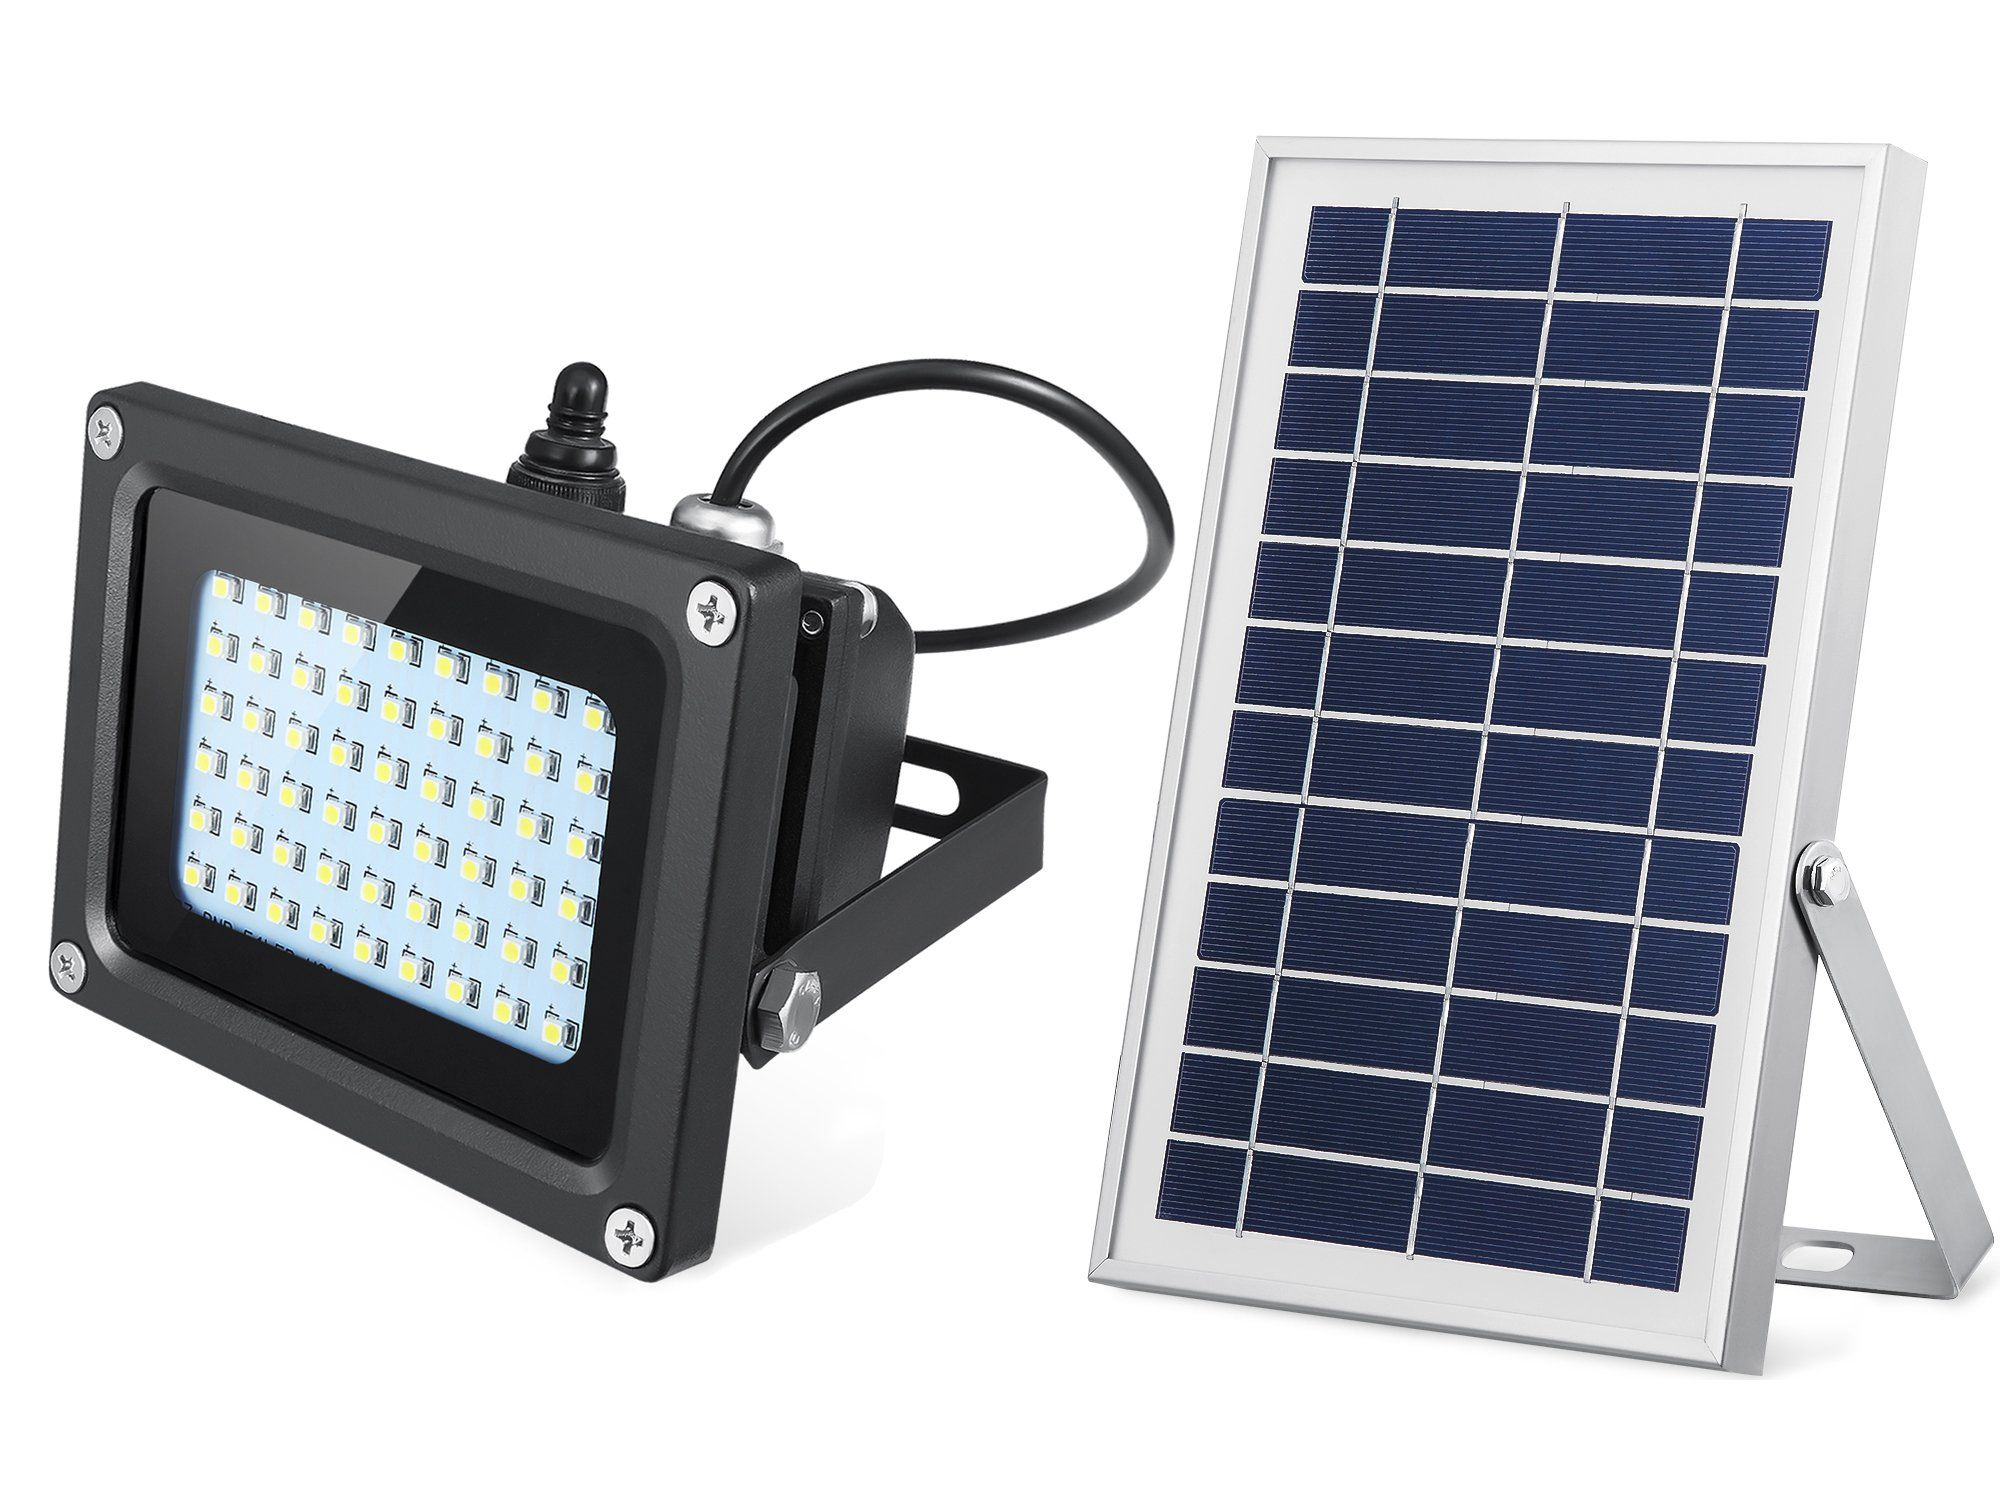 Solar outdoor lights 400 lumens outdoor indoor solar flood light 54 solar outdoor lights 400 lumens outdoor indoor solar flood light 54 led solar security lights solar aloadofball Images